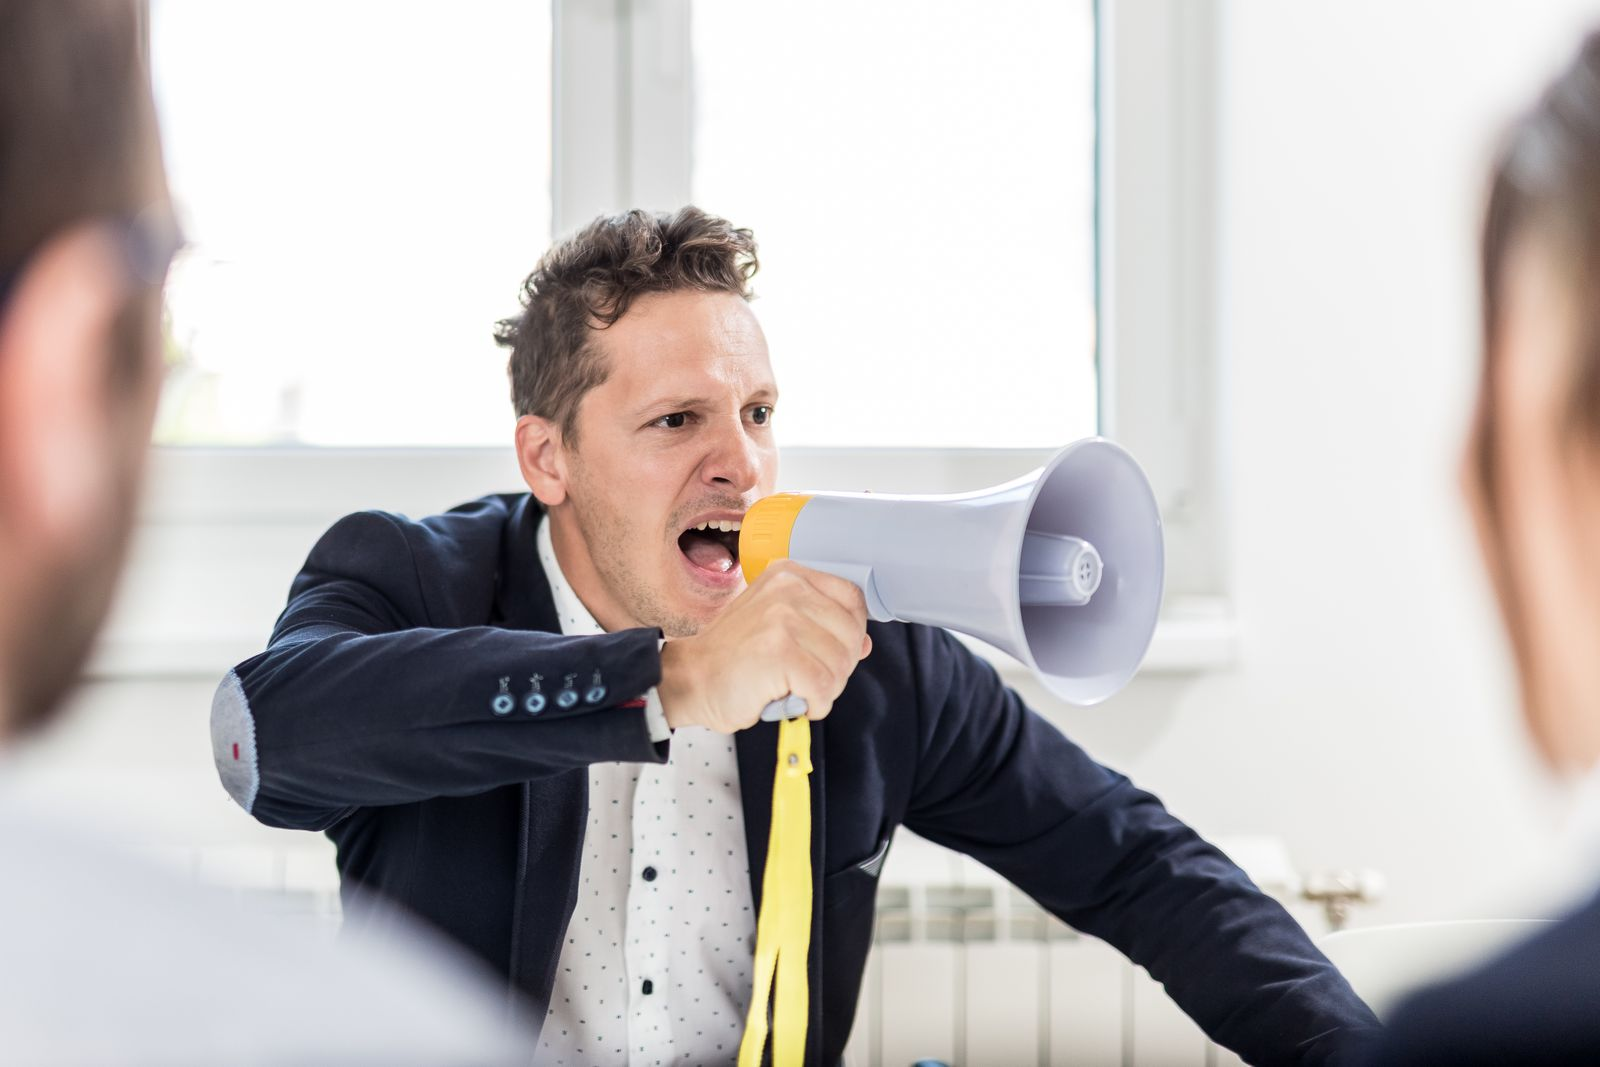 Young boss shouting at employees through megaphone in conference room.